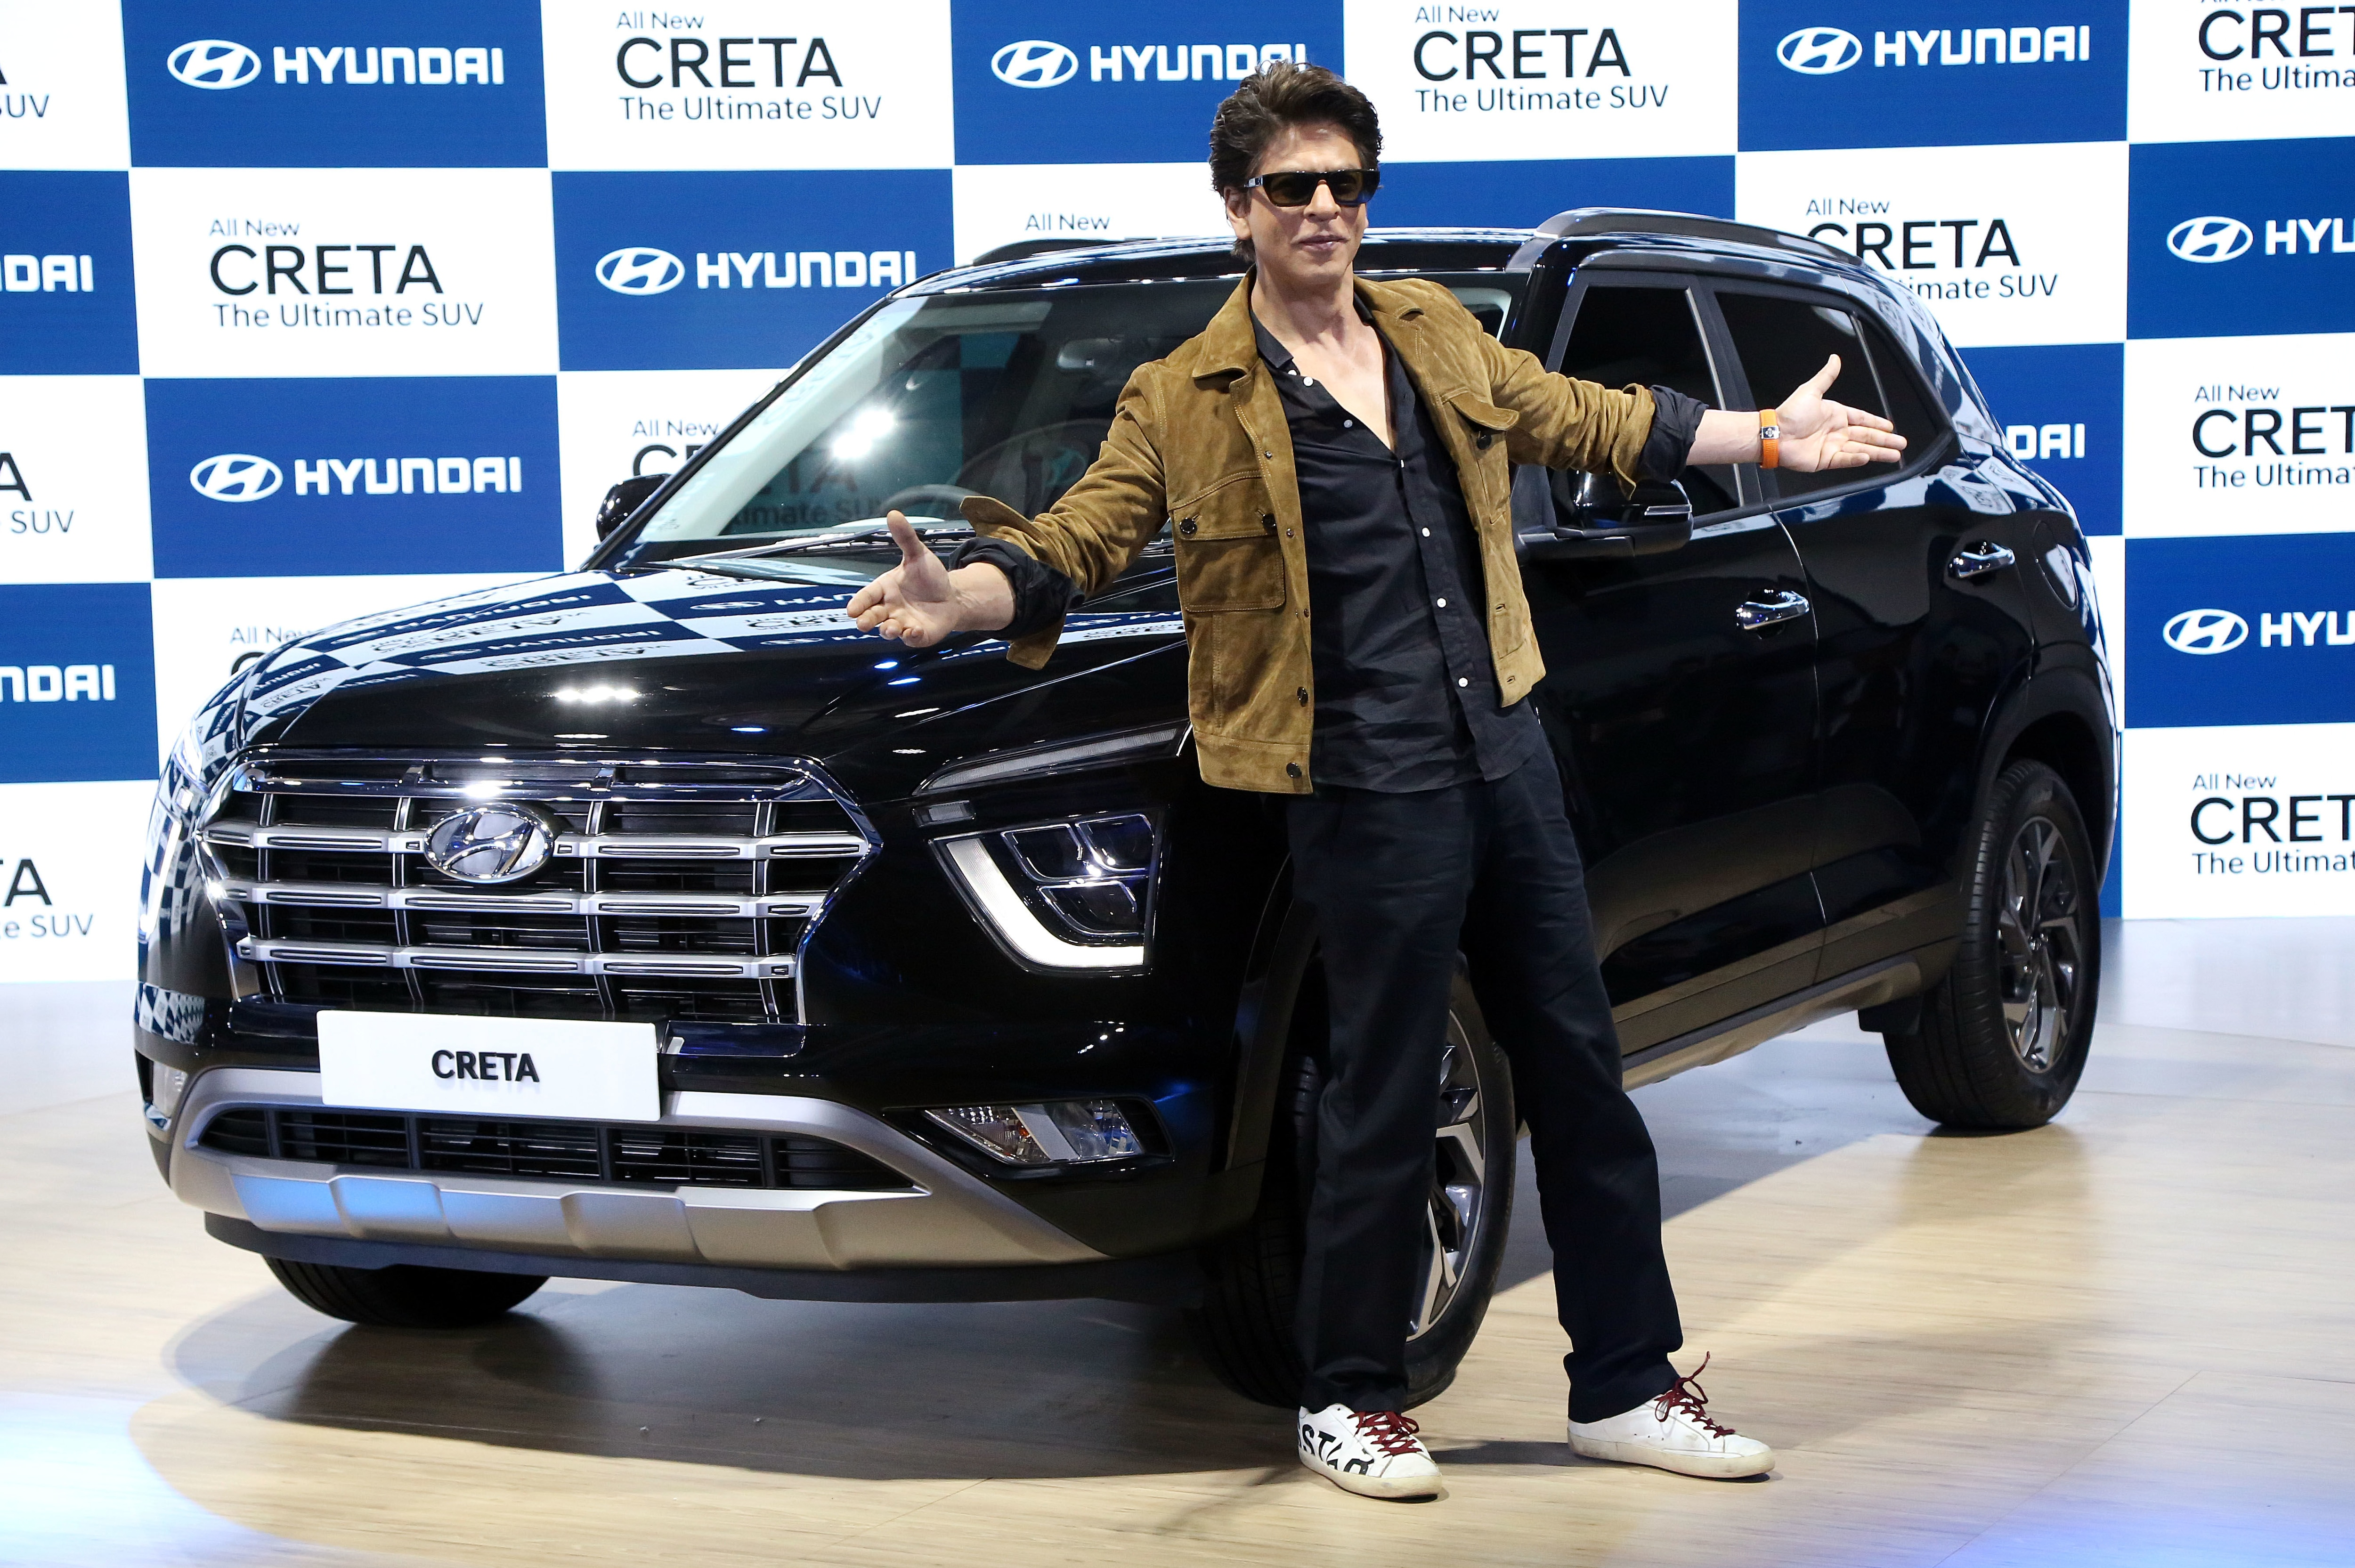 Shah Rukh Khan heaped praise on the second-generation Creta's styling and features inside the cabin.